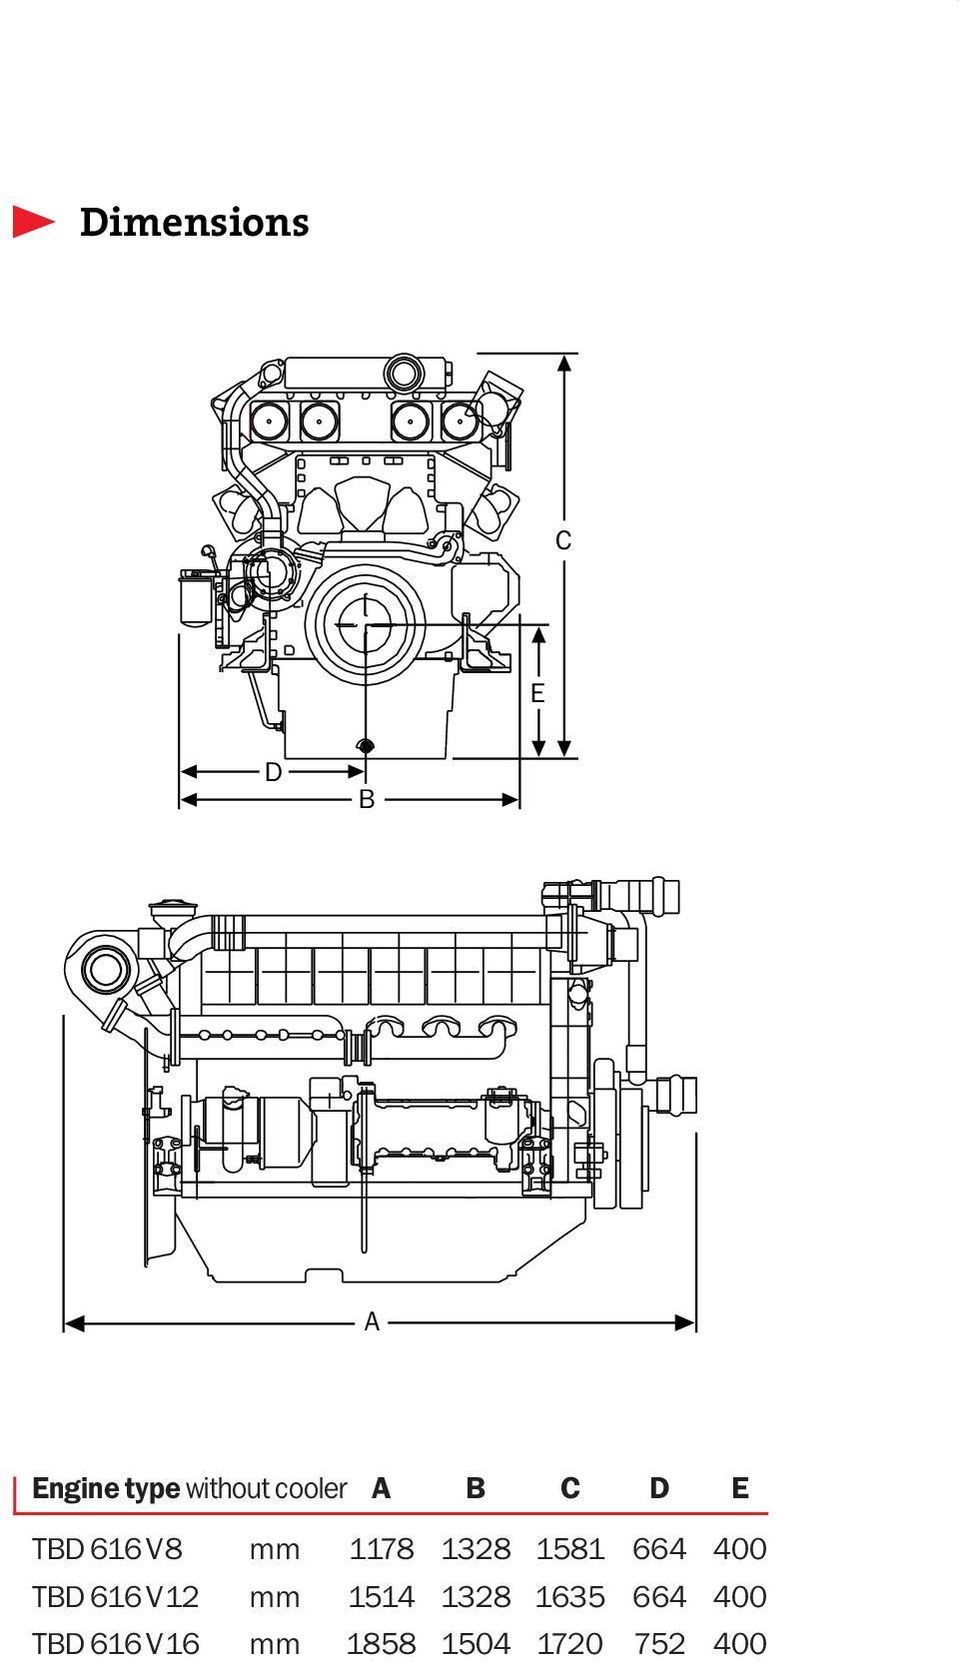 hight resolution of v24 engine diagram wiring diagram homev24 engine diagram wiring diagram yer v24 engine diagram